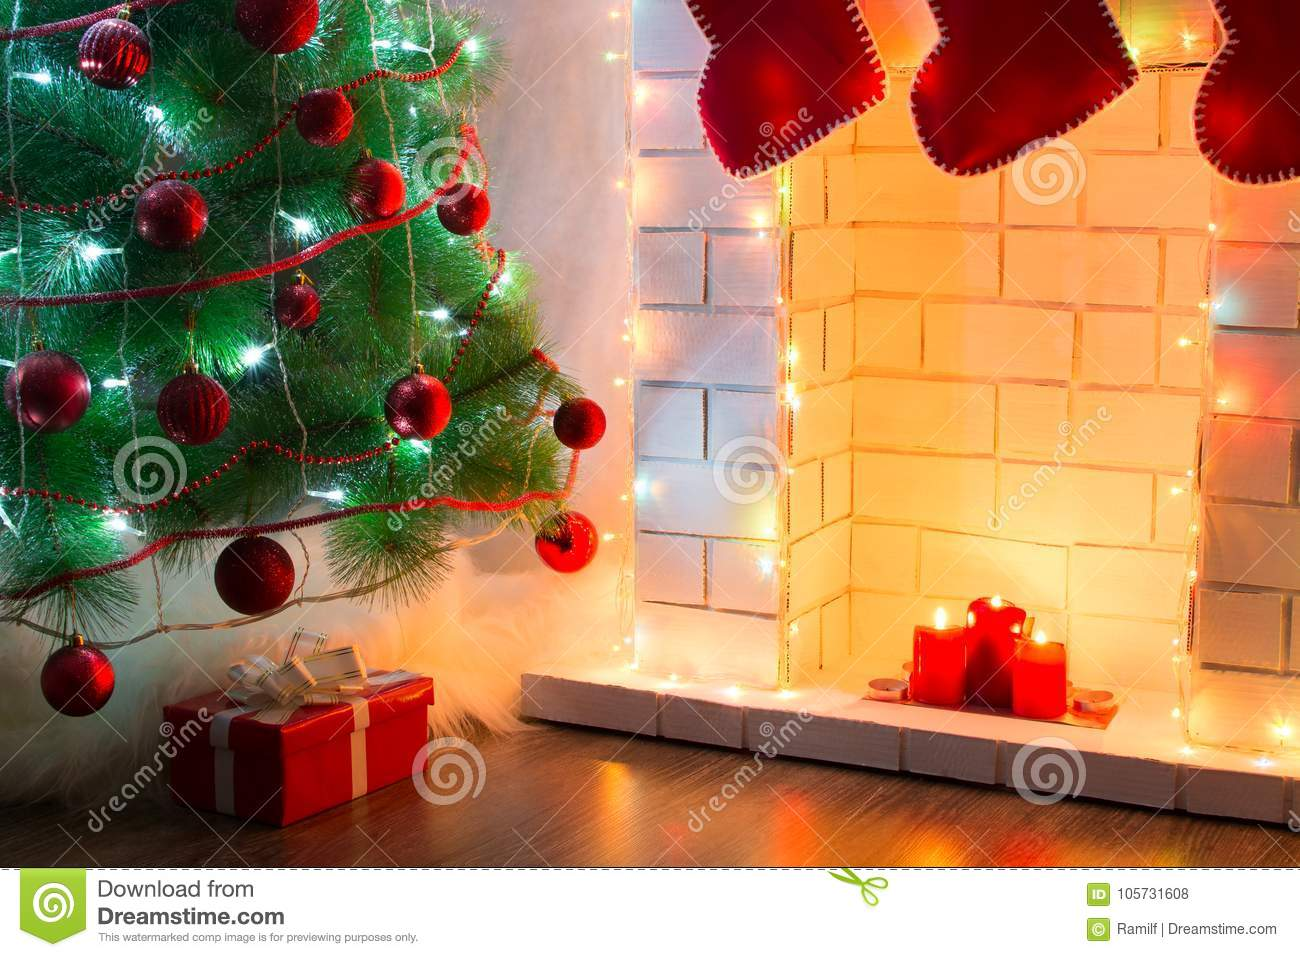 Beautiful decorated tree with presents on floor near fireplace with warm light of candles.